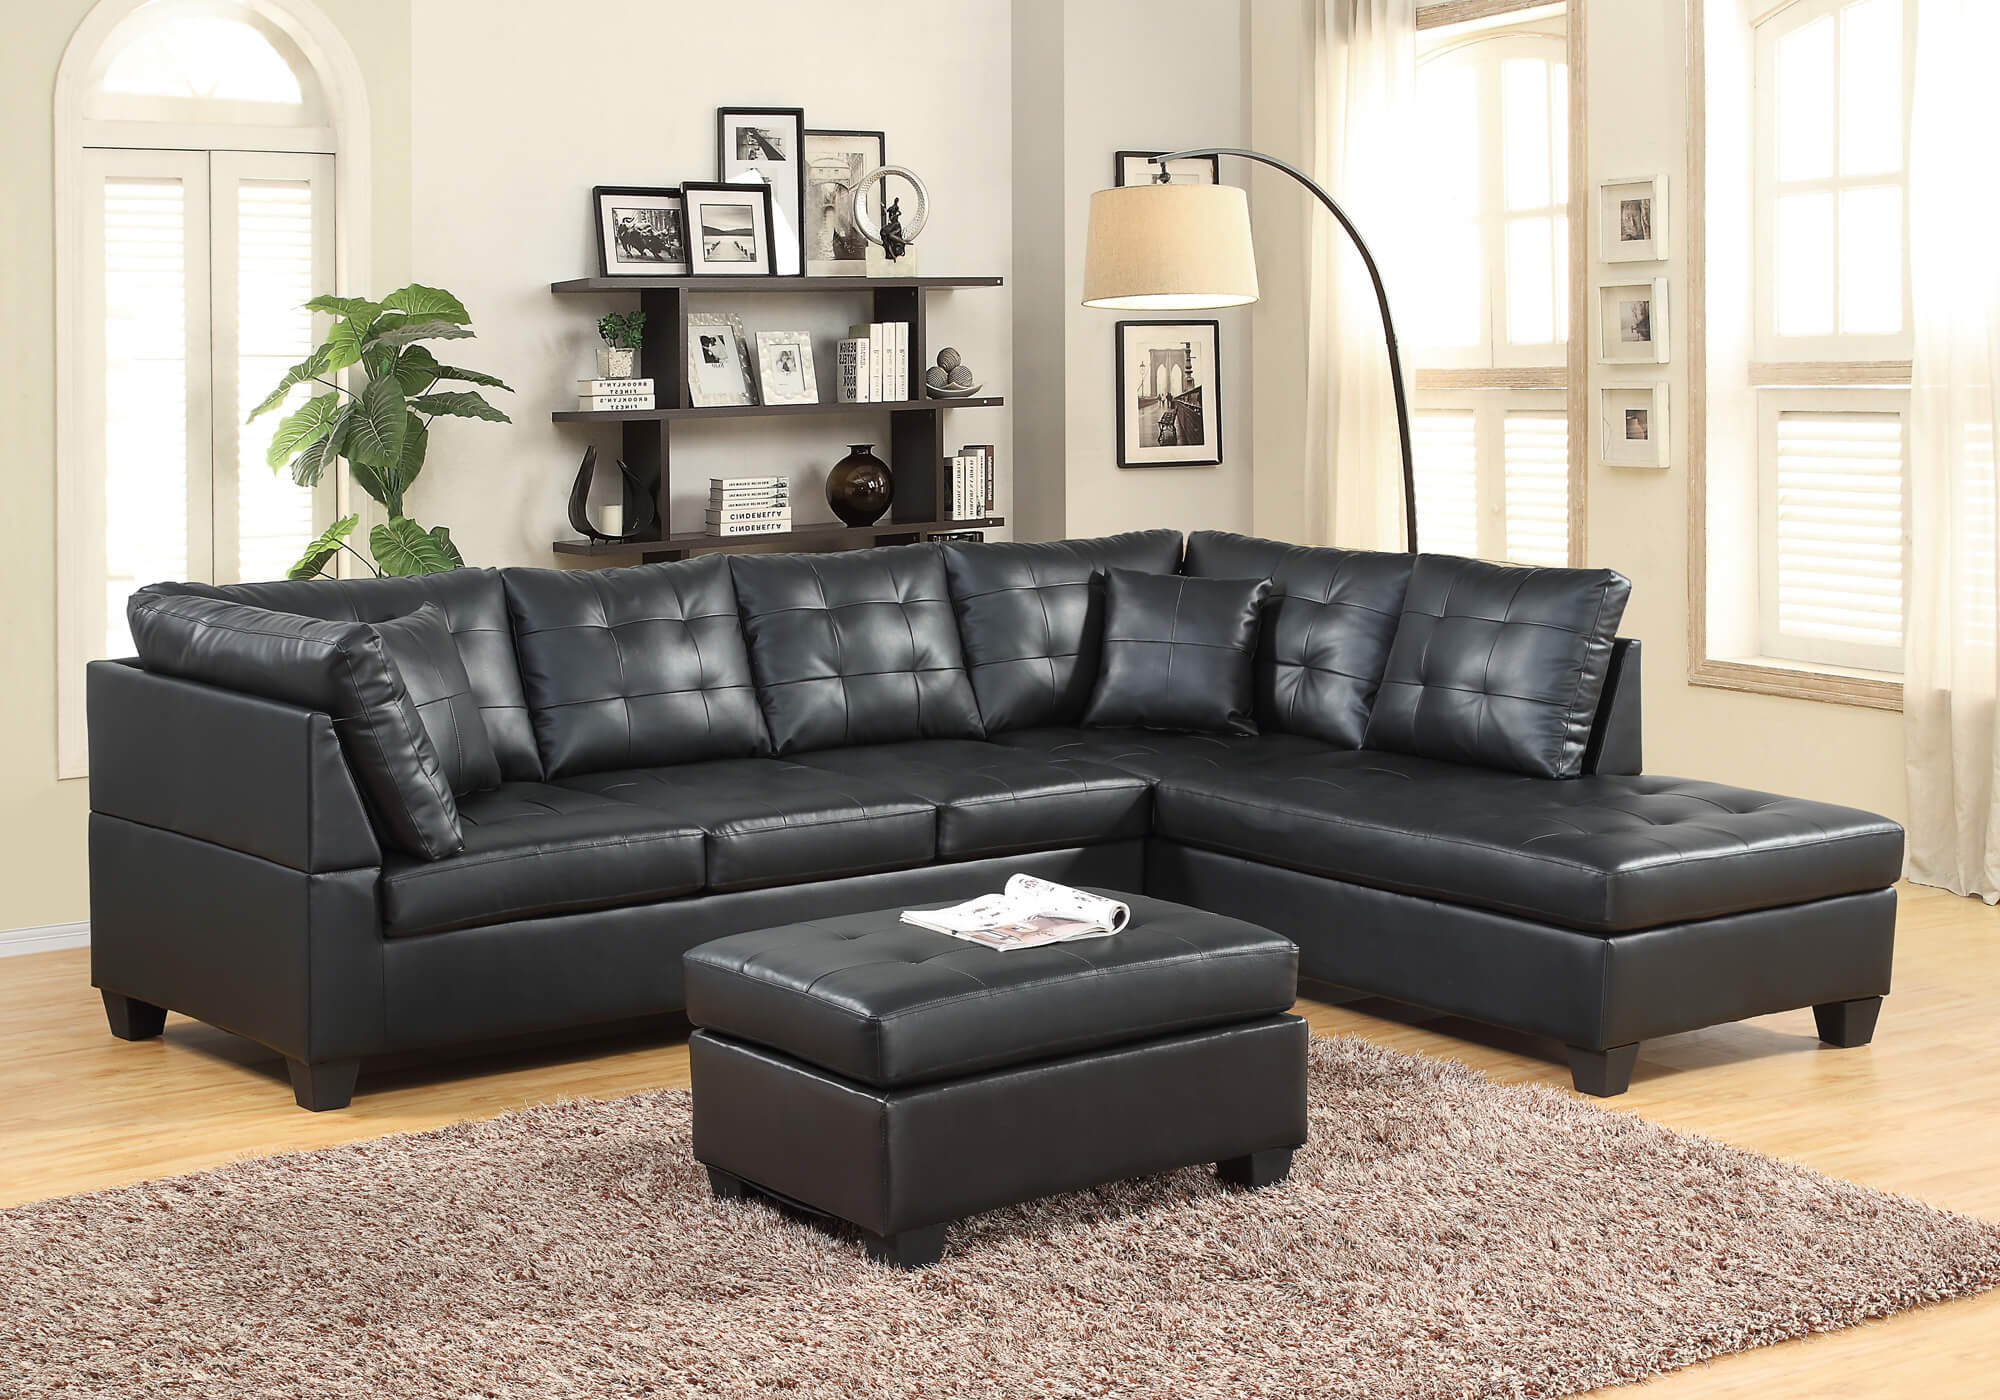 Black Leather Like Sectiona  Sectional Sofa Sets. Arranging Furniture In Living Room. Zen Design Living Room. Design Rugs For Living Room. Interior Decoration Ideas Living Room. Nice Lamps For Living Room. Best Live Poker Rooms. English Style Living Room. Chandelier Living Room